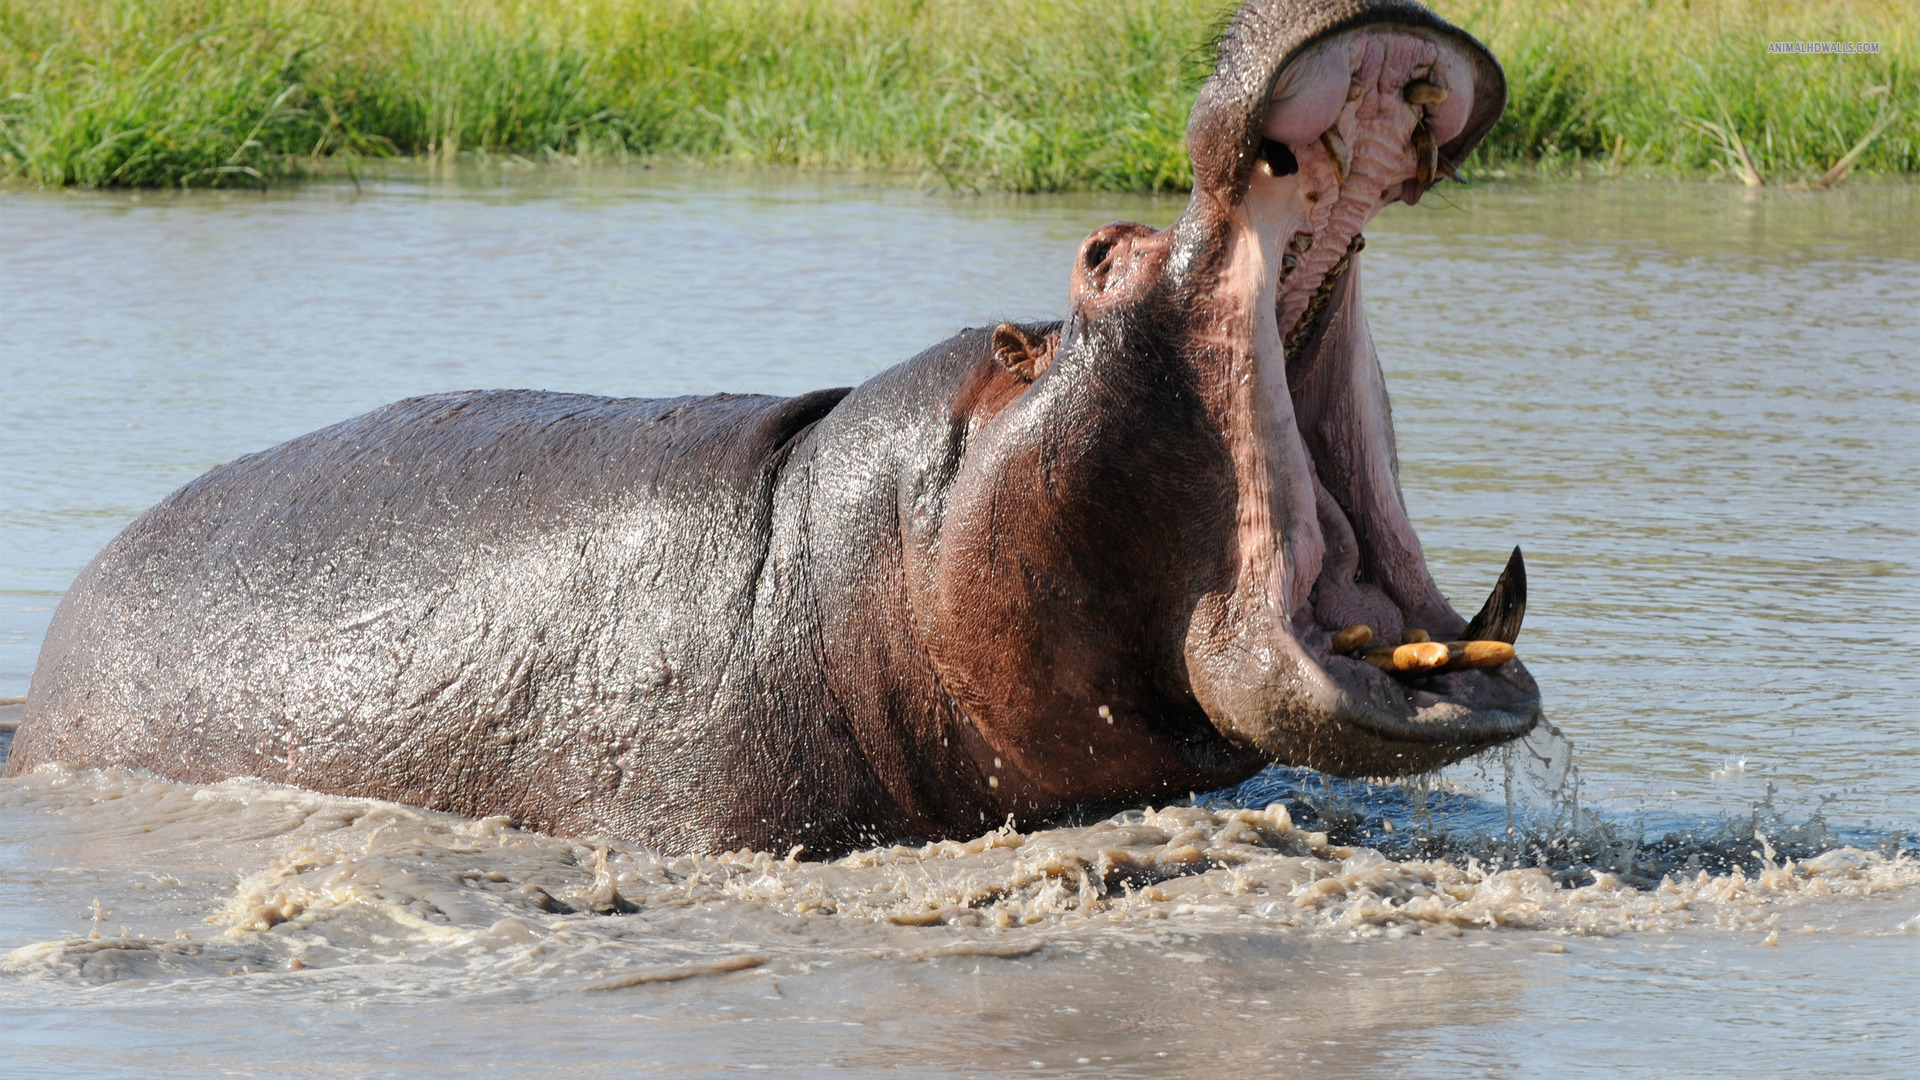 Hippopotamus Yawning in the Water